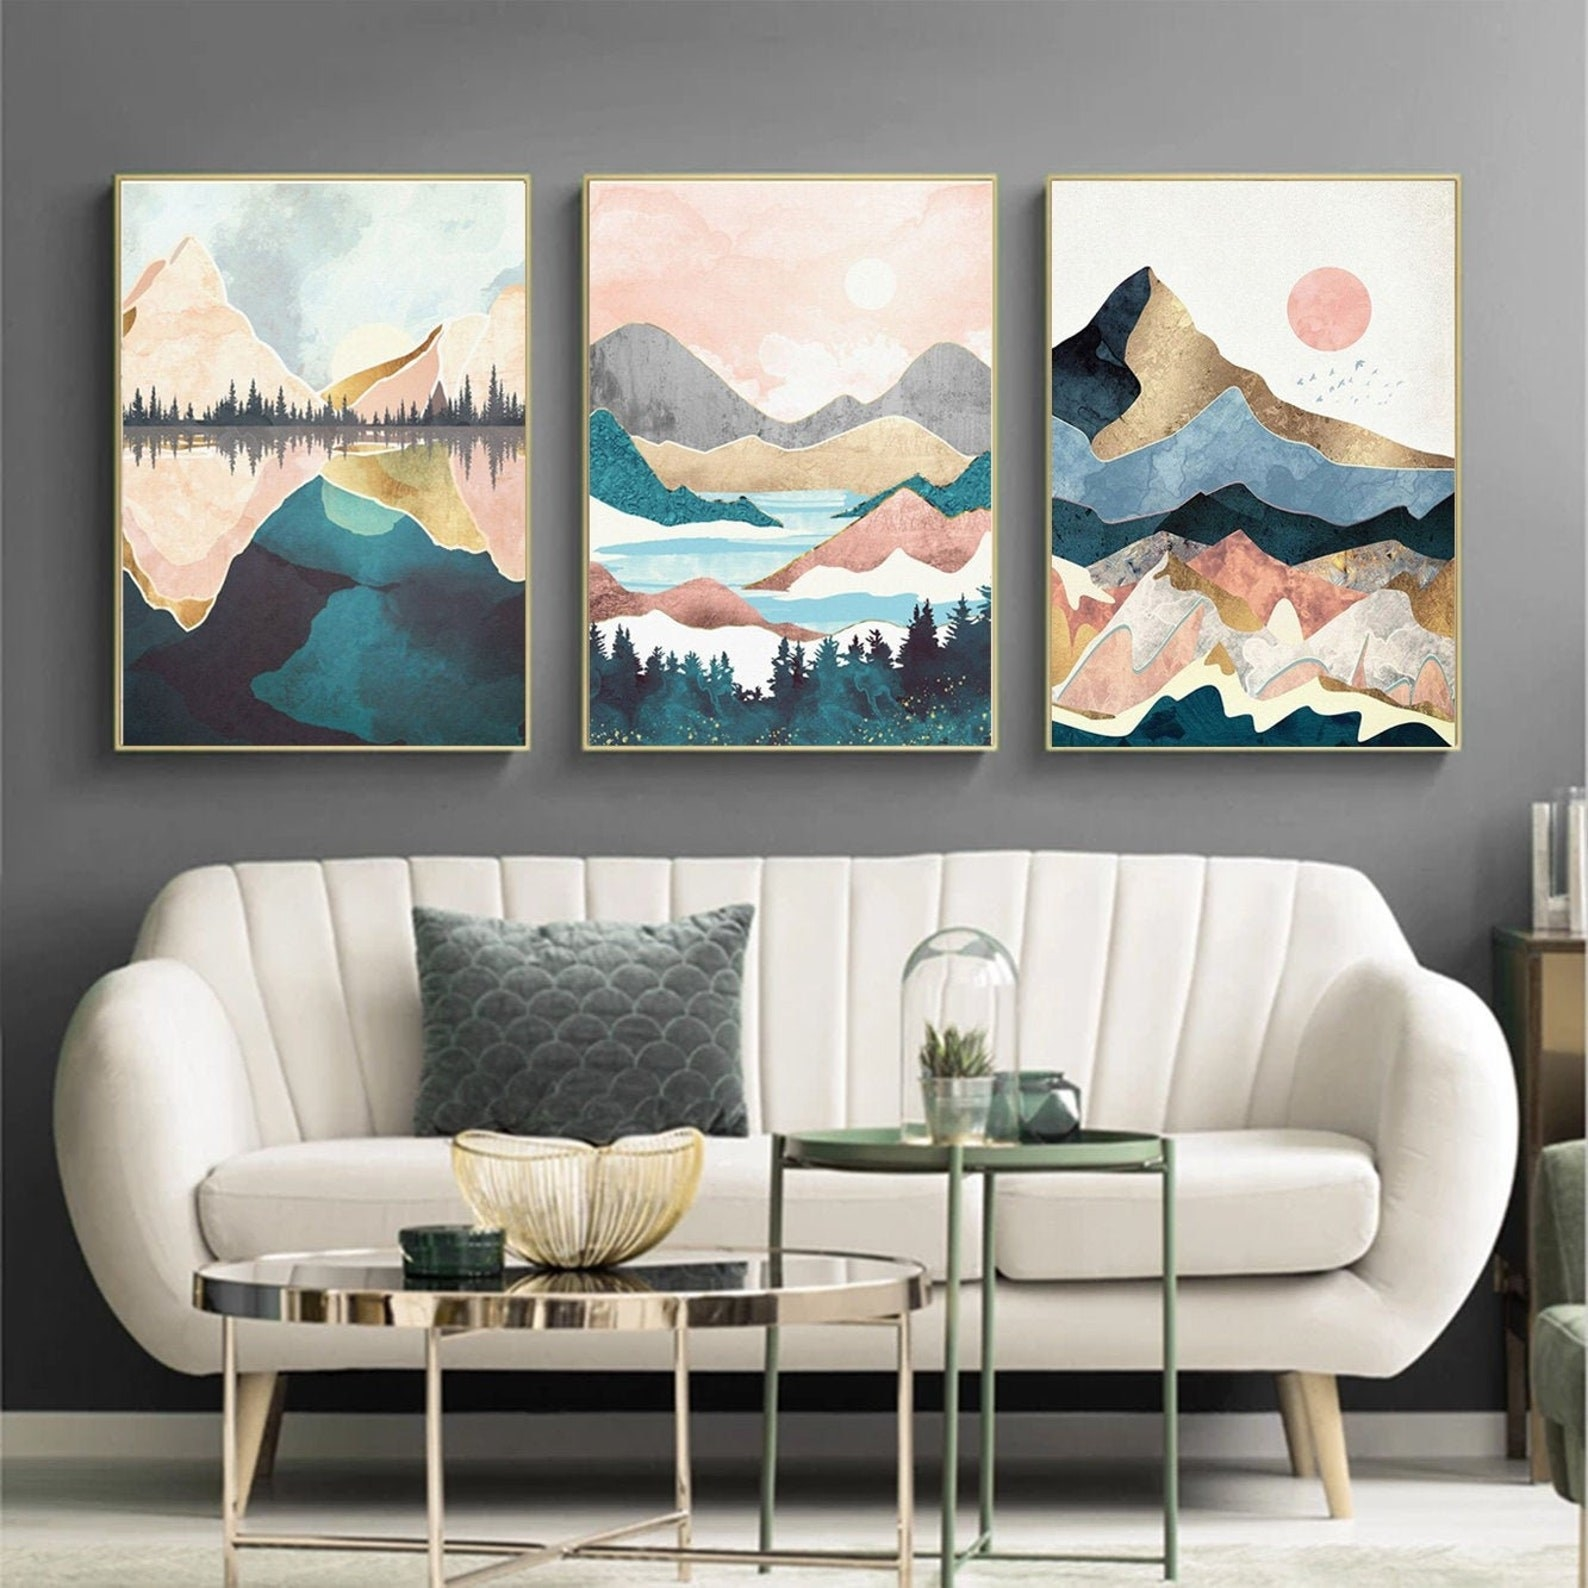 The prints hanging over someones sofa